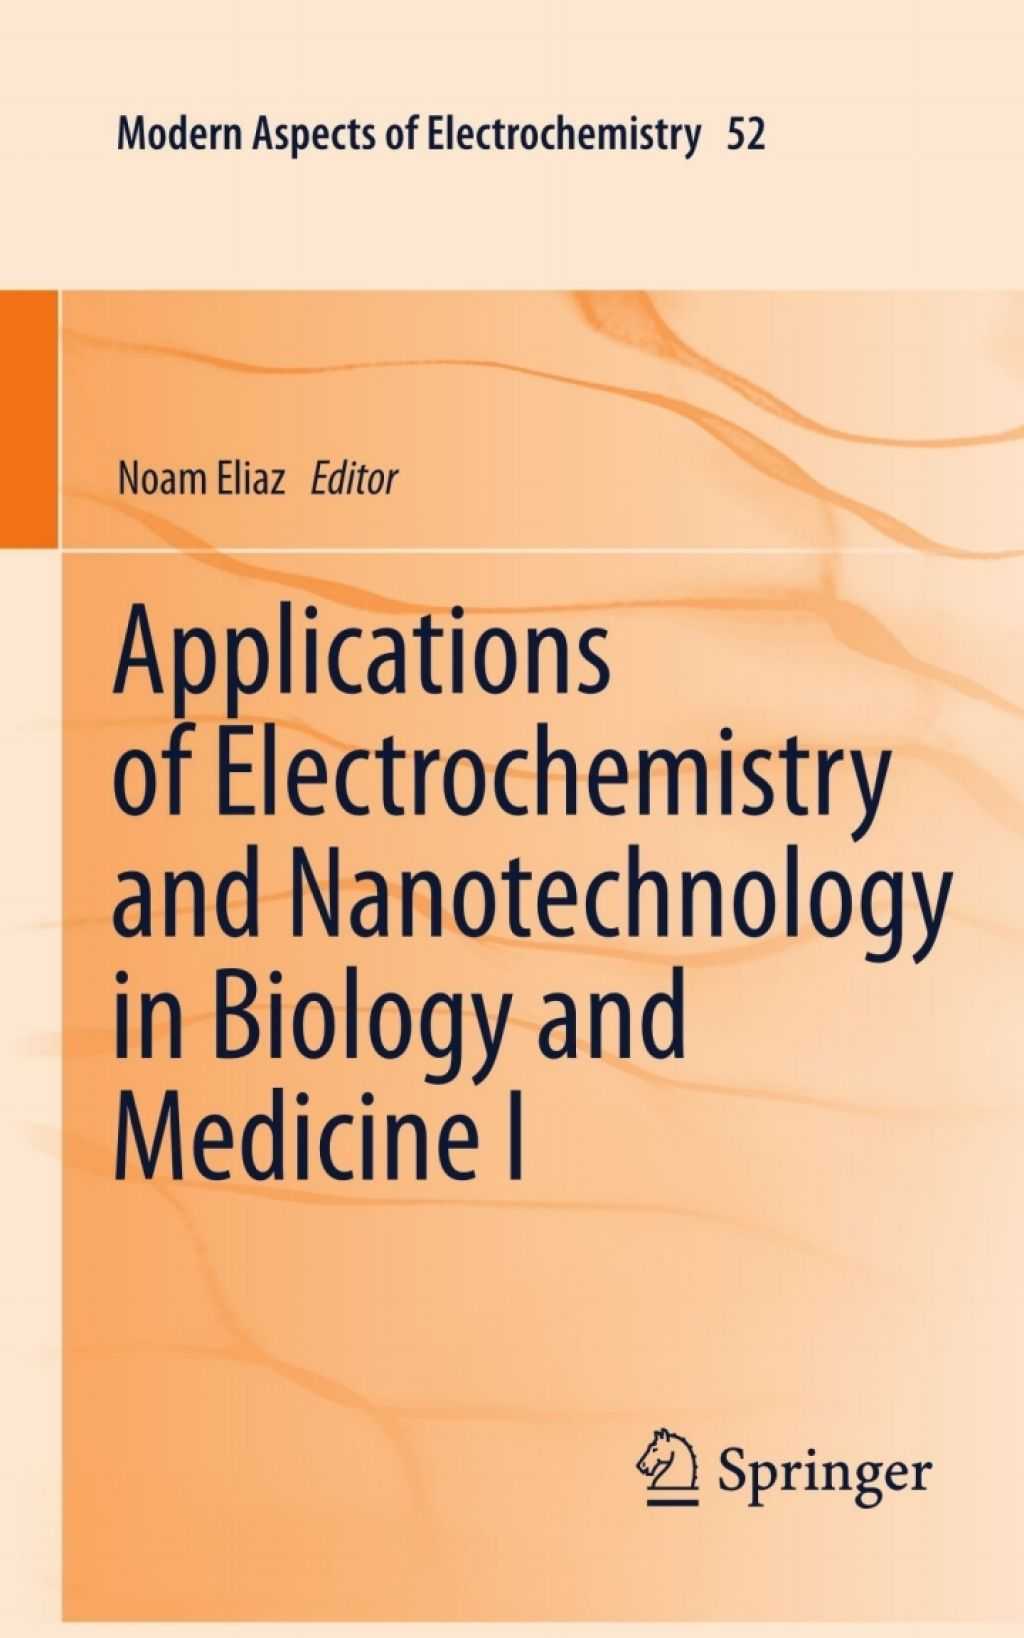 Applications of Electrochemistry and Nanotechnology in